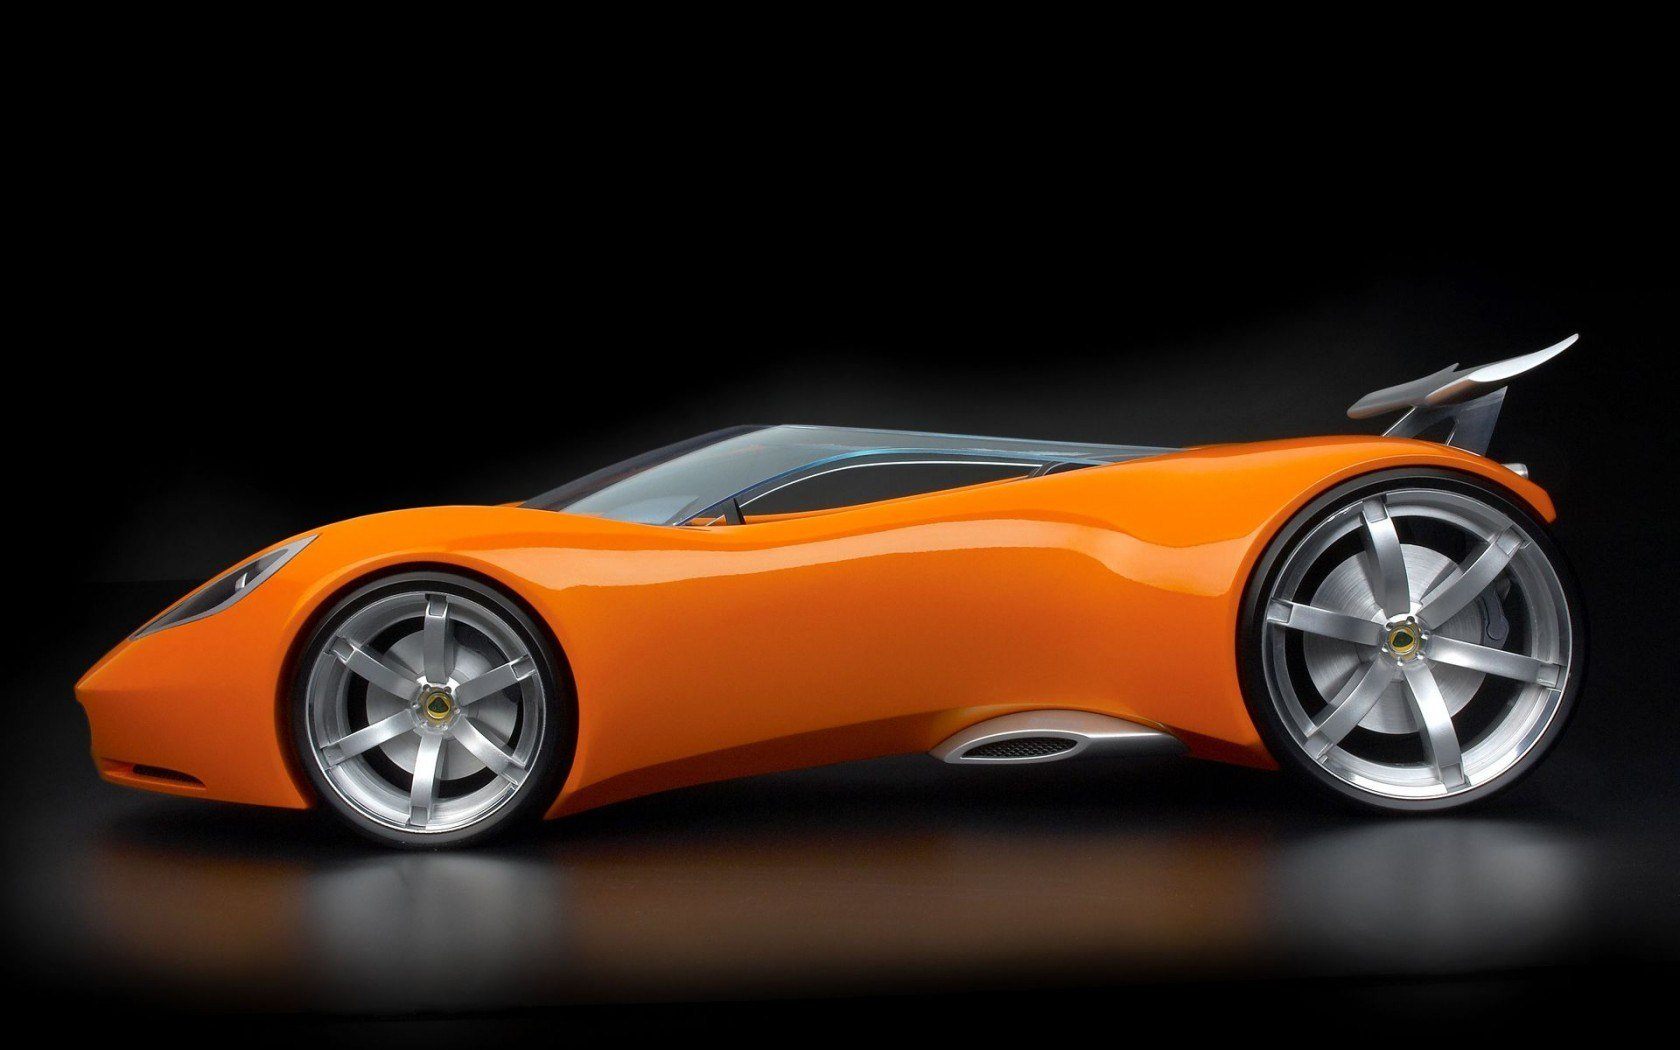 Latest Lotus Concept Car Wallpapers Hd Wallpapers Id 1042 Free Download